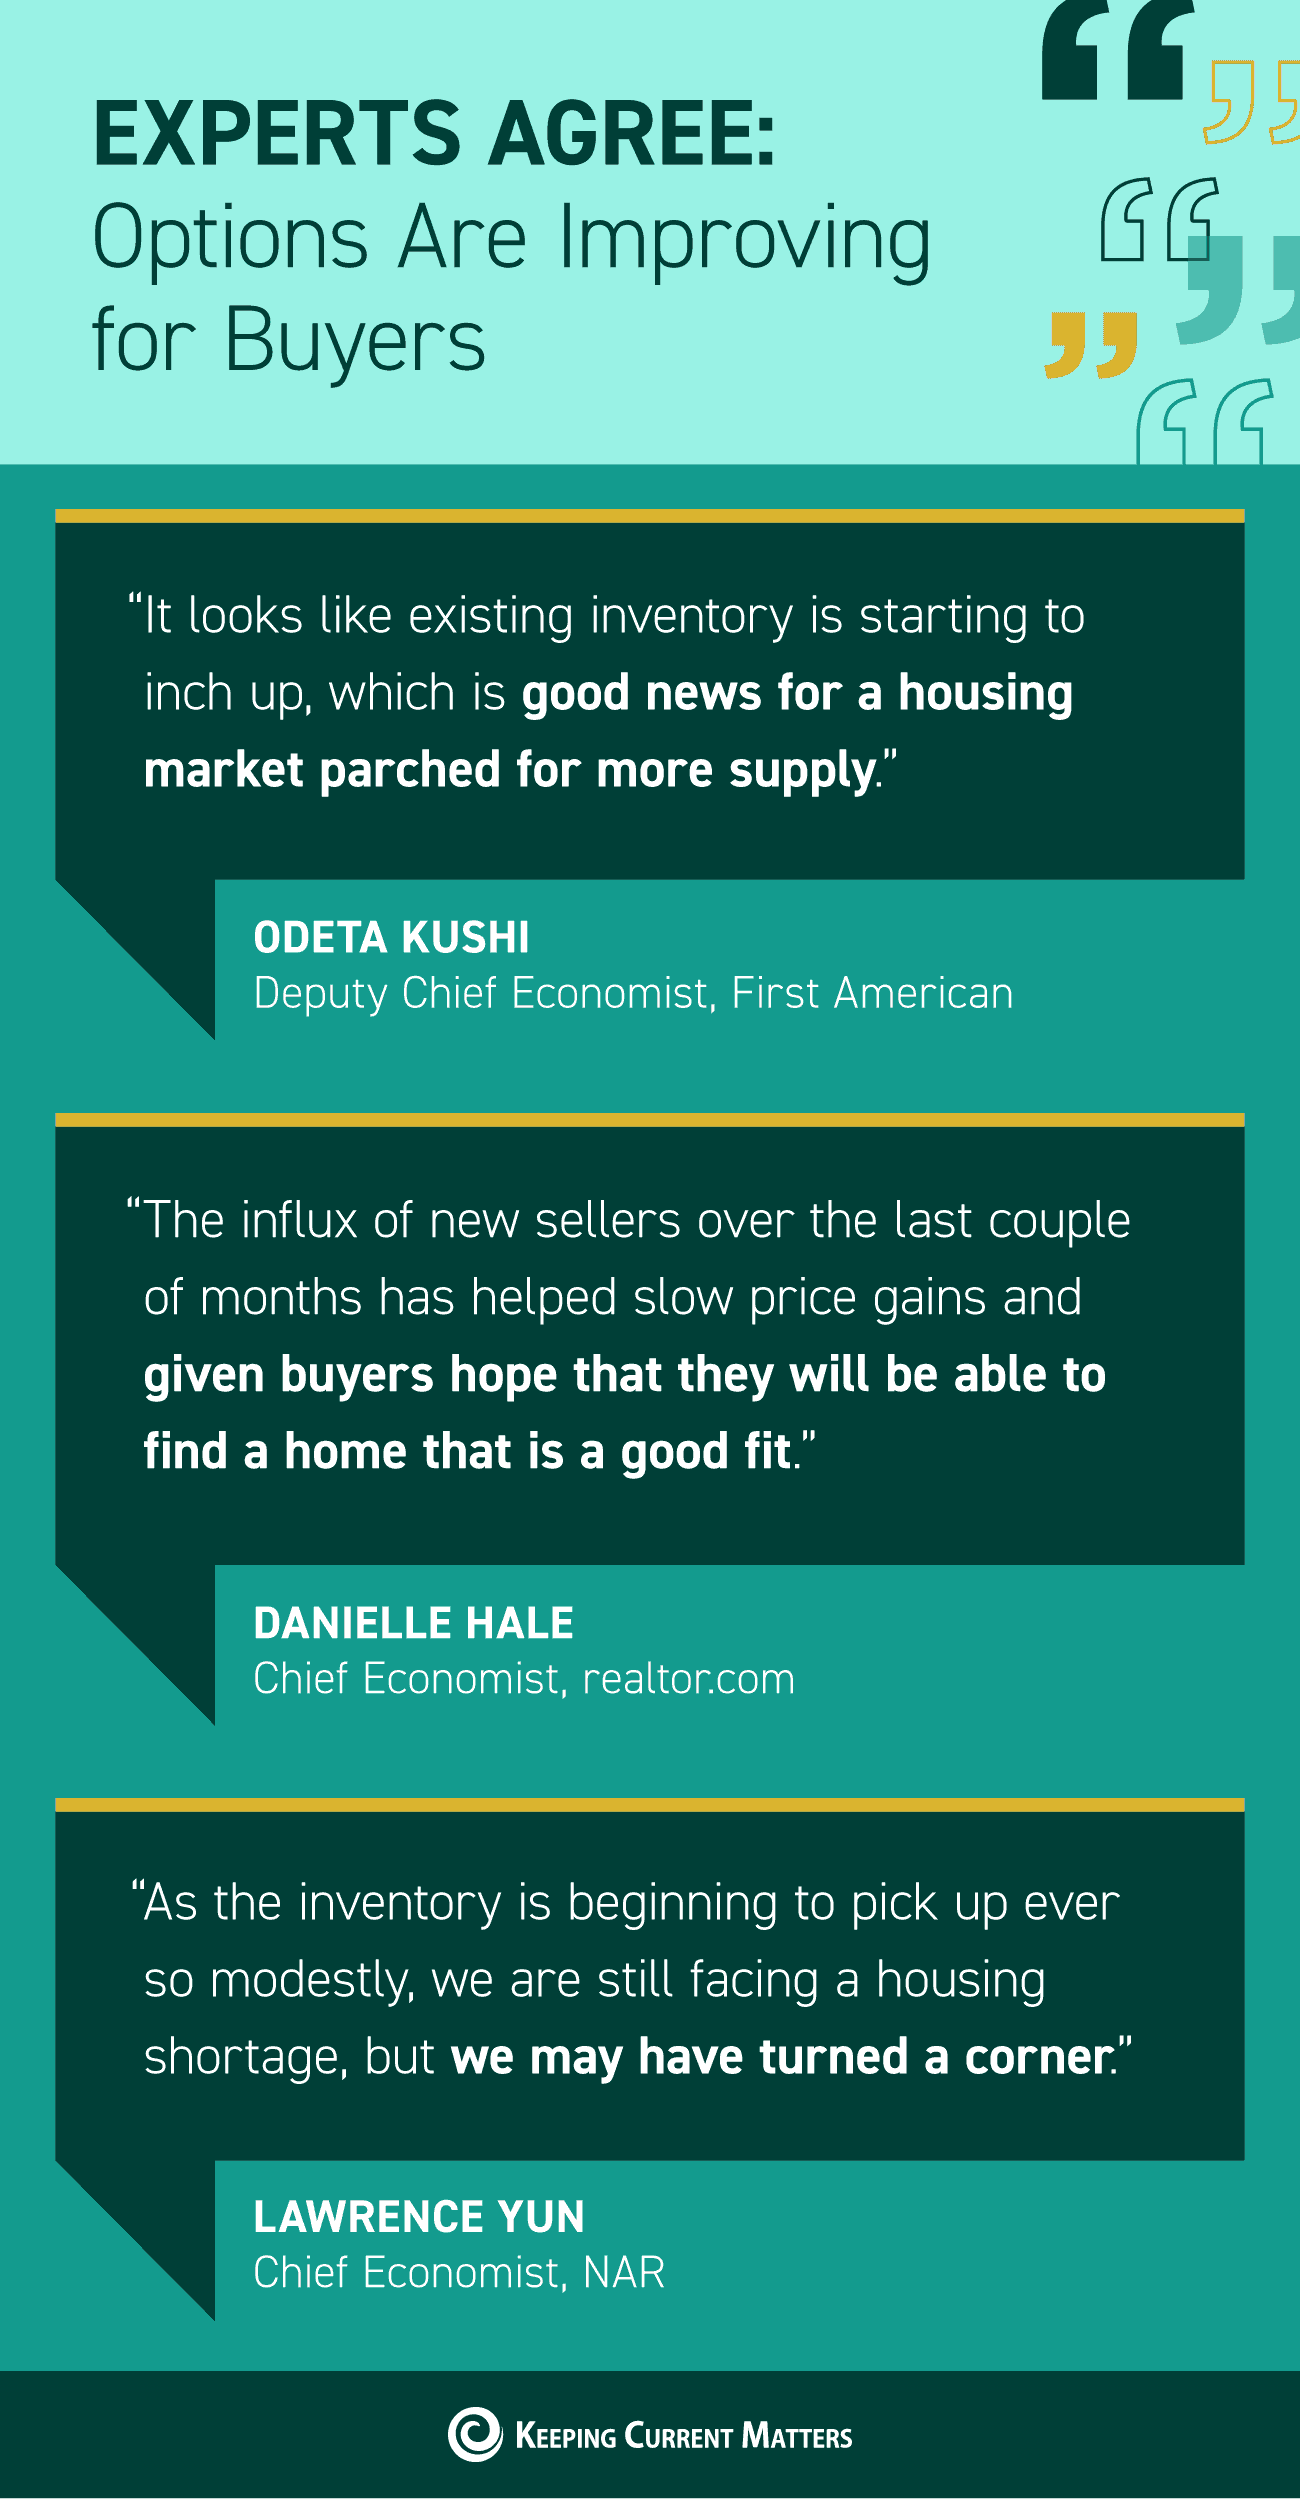 Experts Agree: Options Are Improving for Buyers [INFOGRAPHIC] | Keeping Current Matters